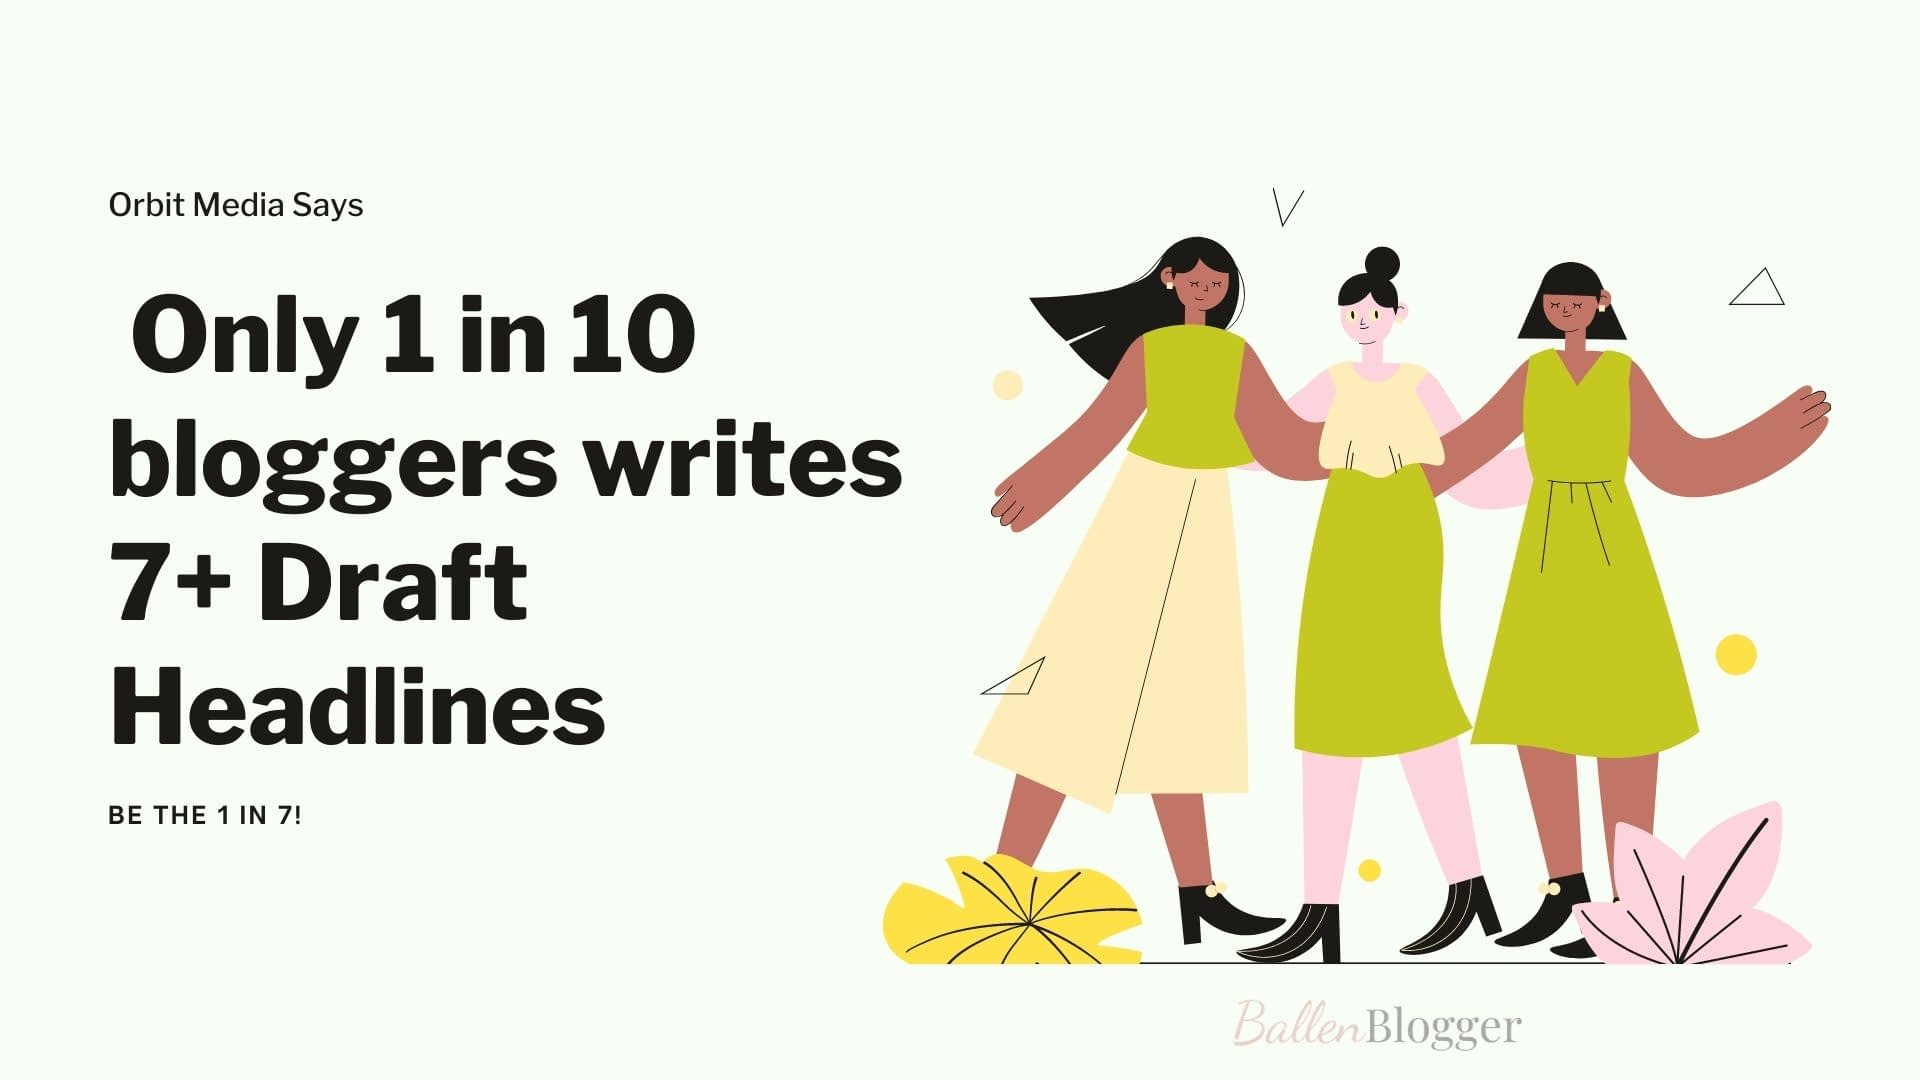 Orbit Media reports that only 1 in 10 bloggers writes 7+ Draft Headlines. This part of the study focuses on the 1 in 10 bloggers that are successful and making money with their blog.